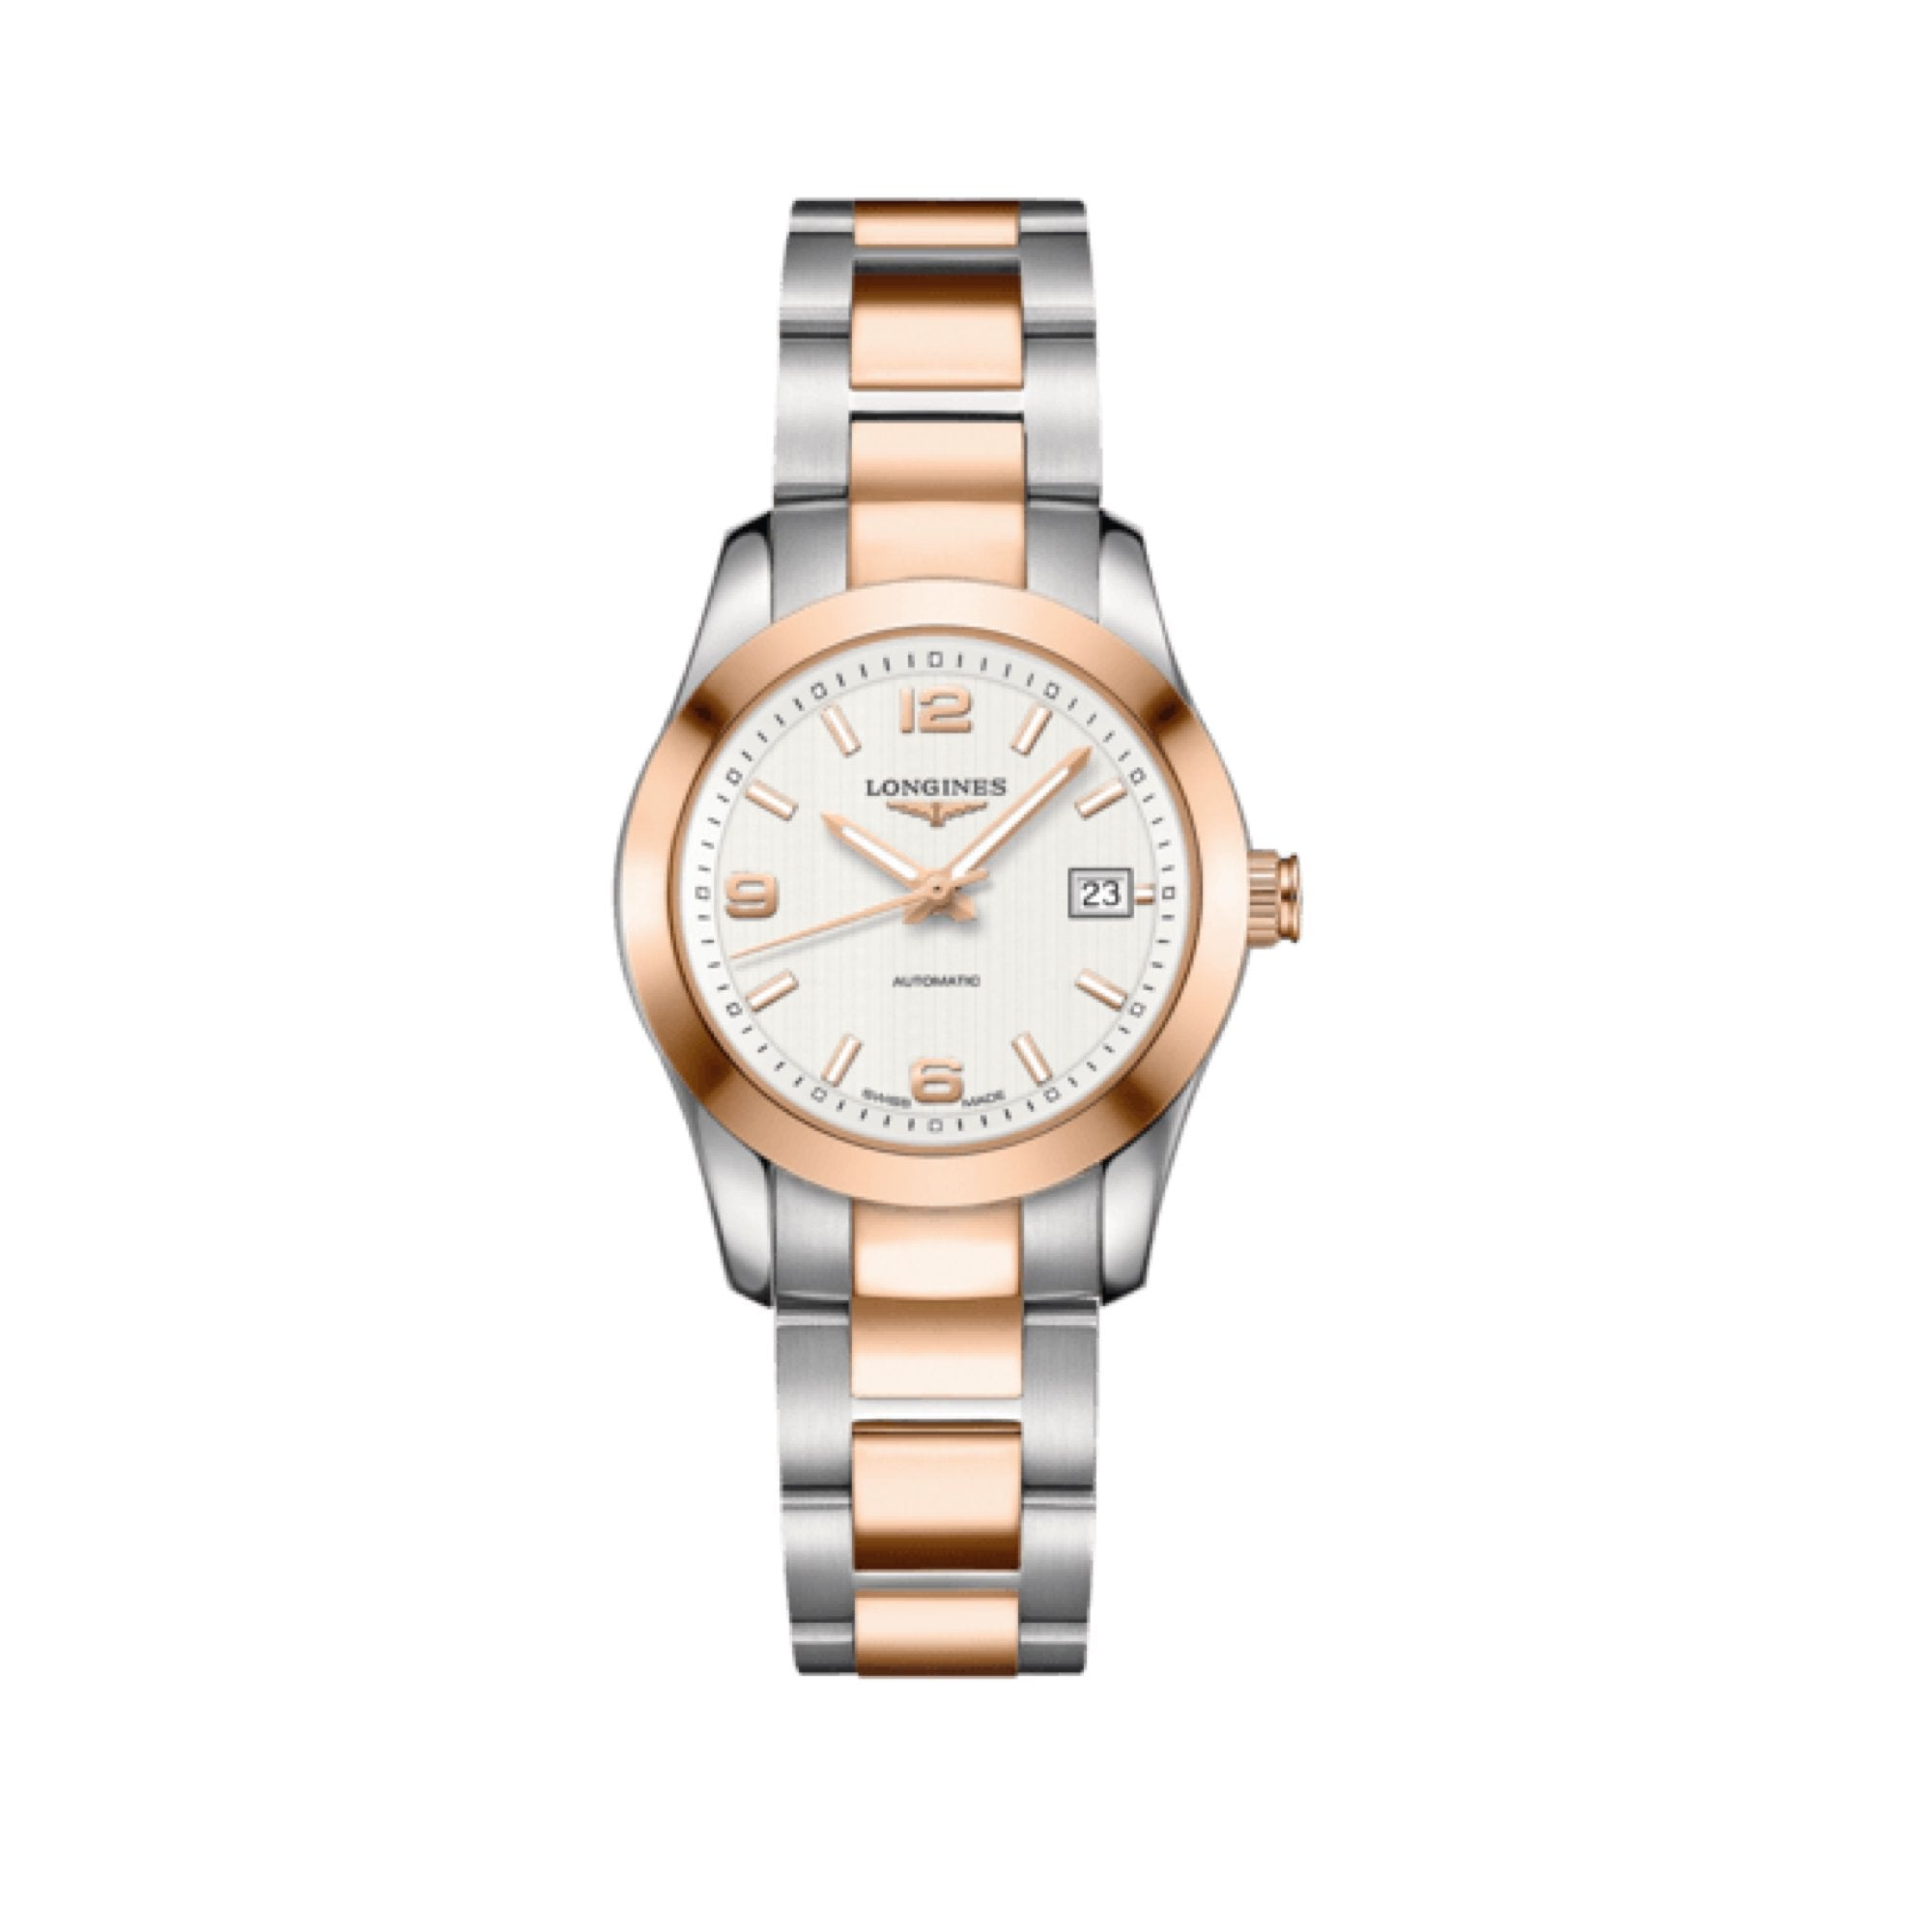 Longines Two Tone Classic Watch